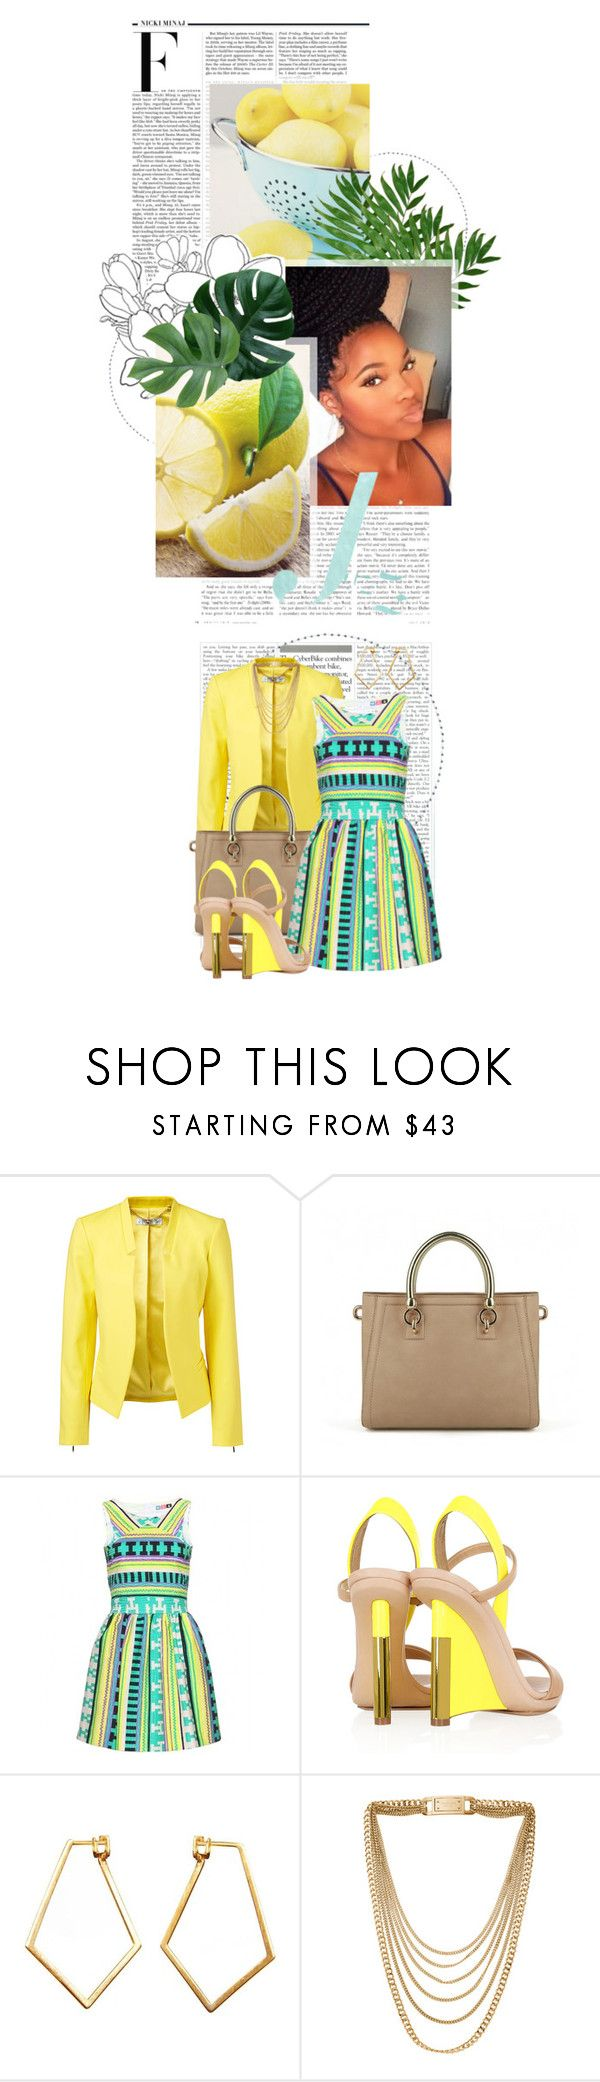 """""""NEW! Contest: Color Gallery!"""" by crystal85 ❤ liked on Polyvore featuring Nicki Minaj, Forever New, MSGM, Reed Krakoff, Dutch Basics and Michael Kors"""